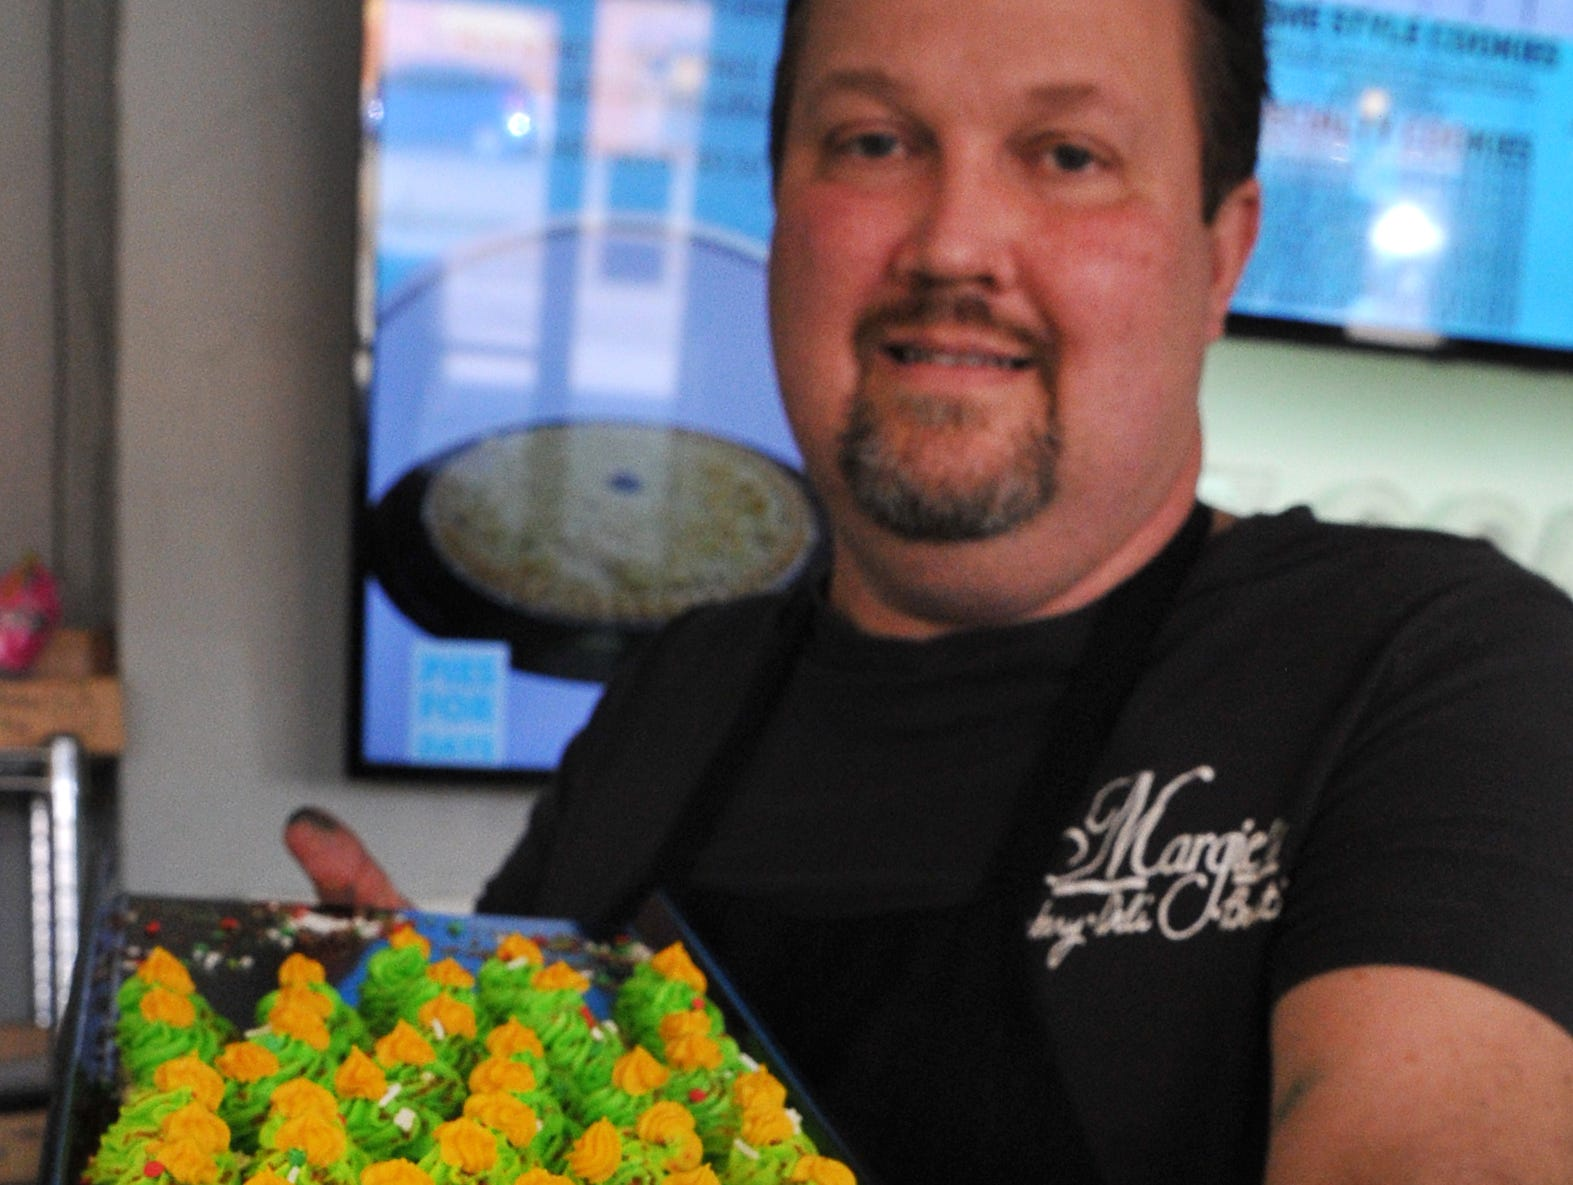 Margie's Sweet Shop, Owner, Michael Gerstner displays one of his bakery's most favored treat, Icing Thumb Prints.